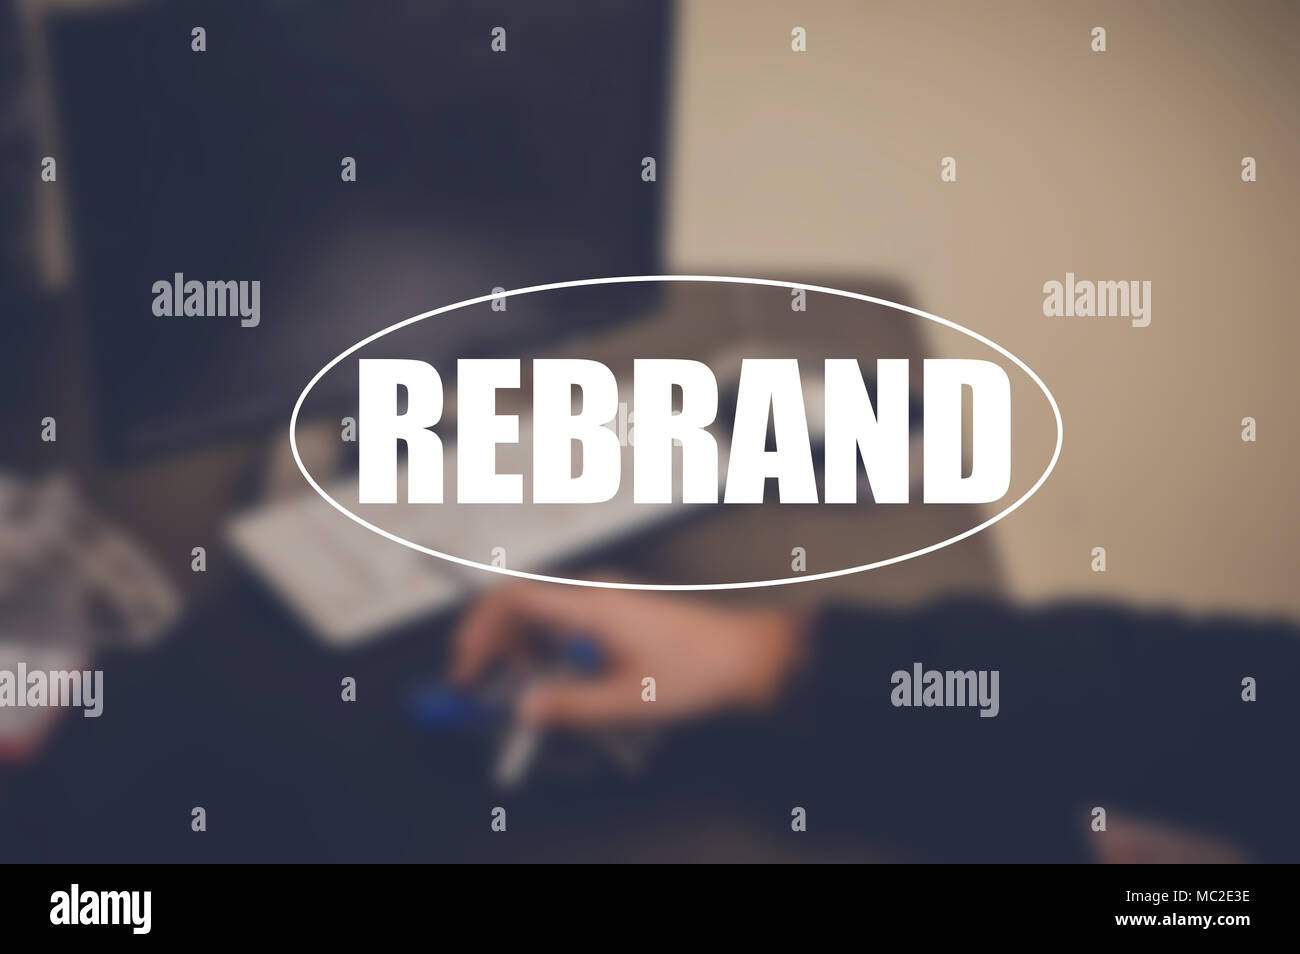 Rebrand word with blurring background - Stock Image